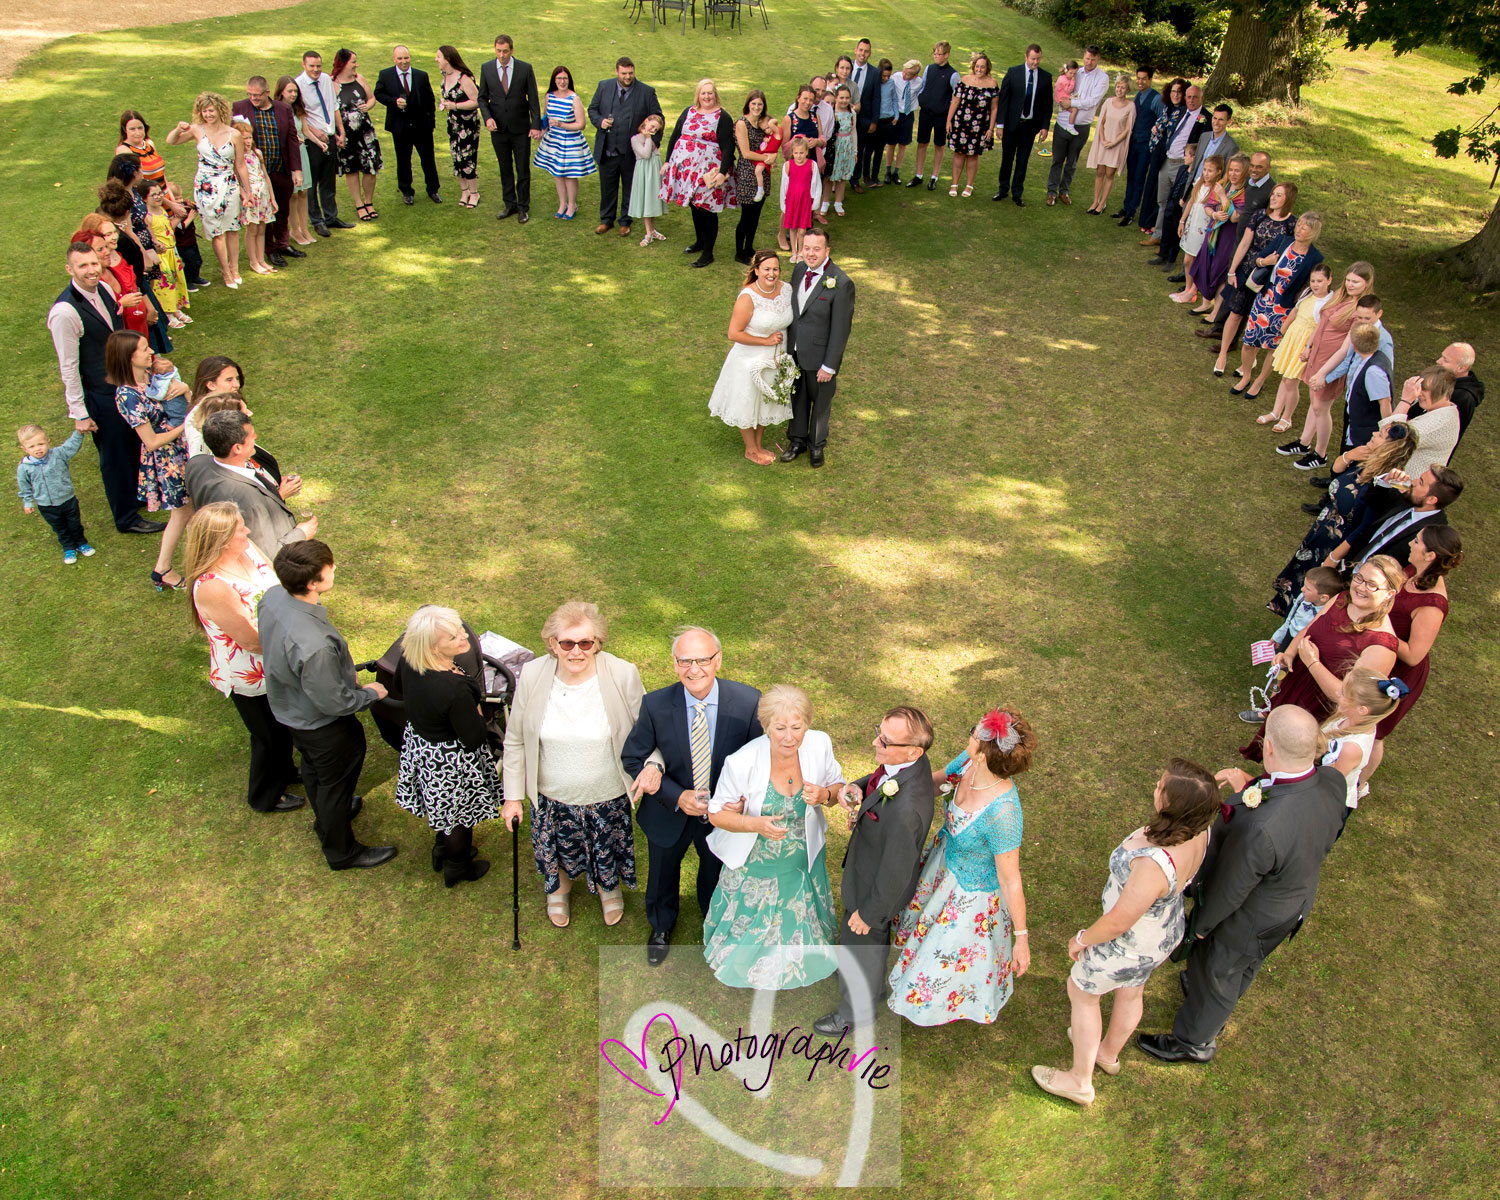 wedding photography in ely red barn norfolk wedding guests in a heart shape taken from a cherry picker on a tractor by wedding photographer vicki newman